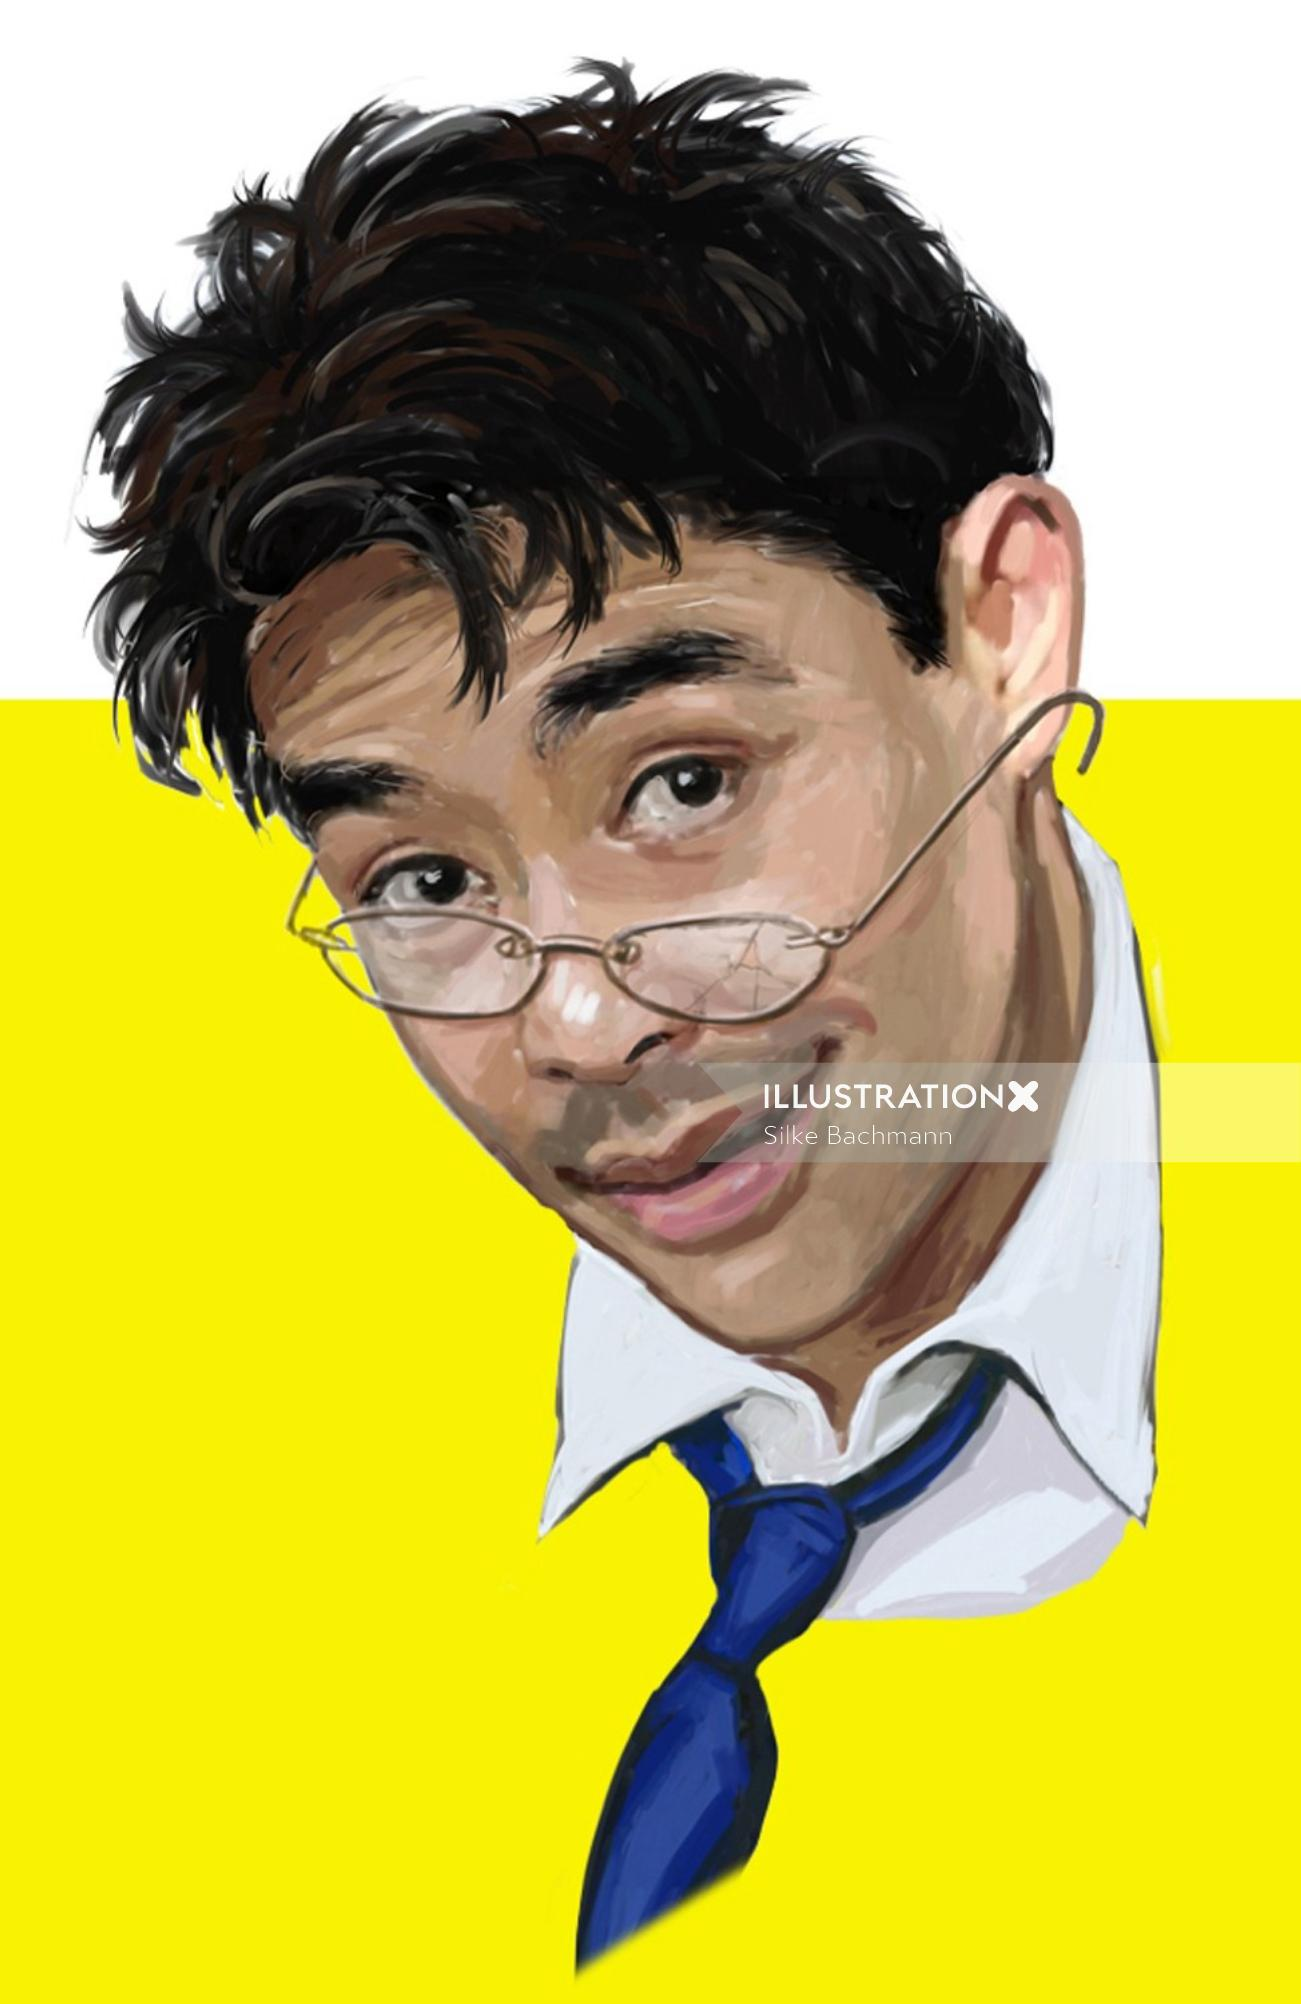 Painting of a guy wearing spects